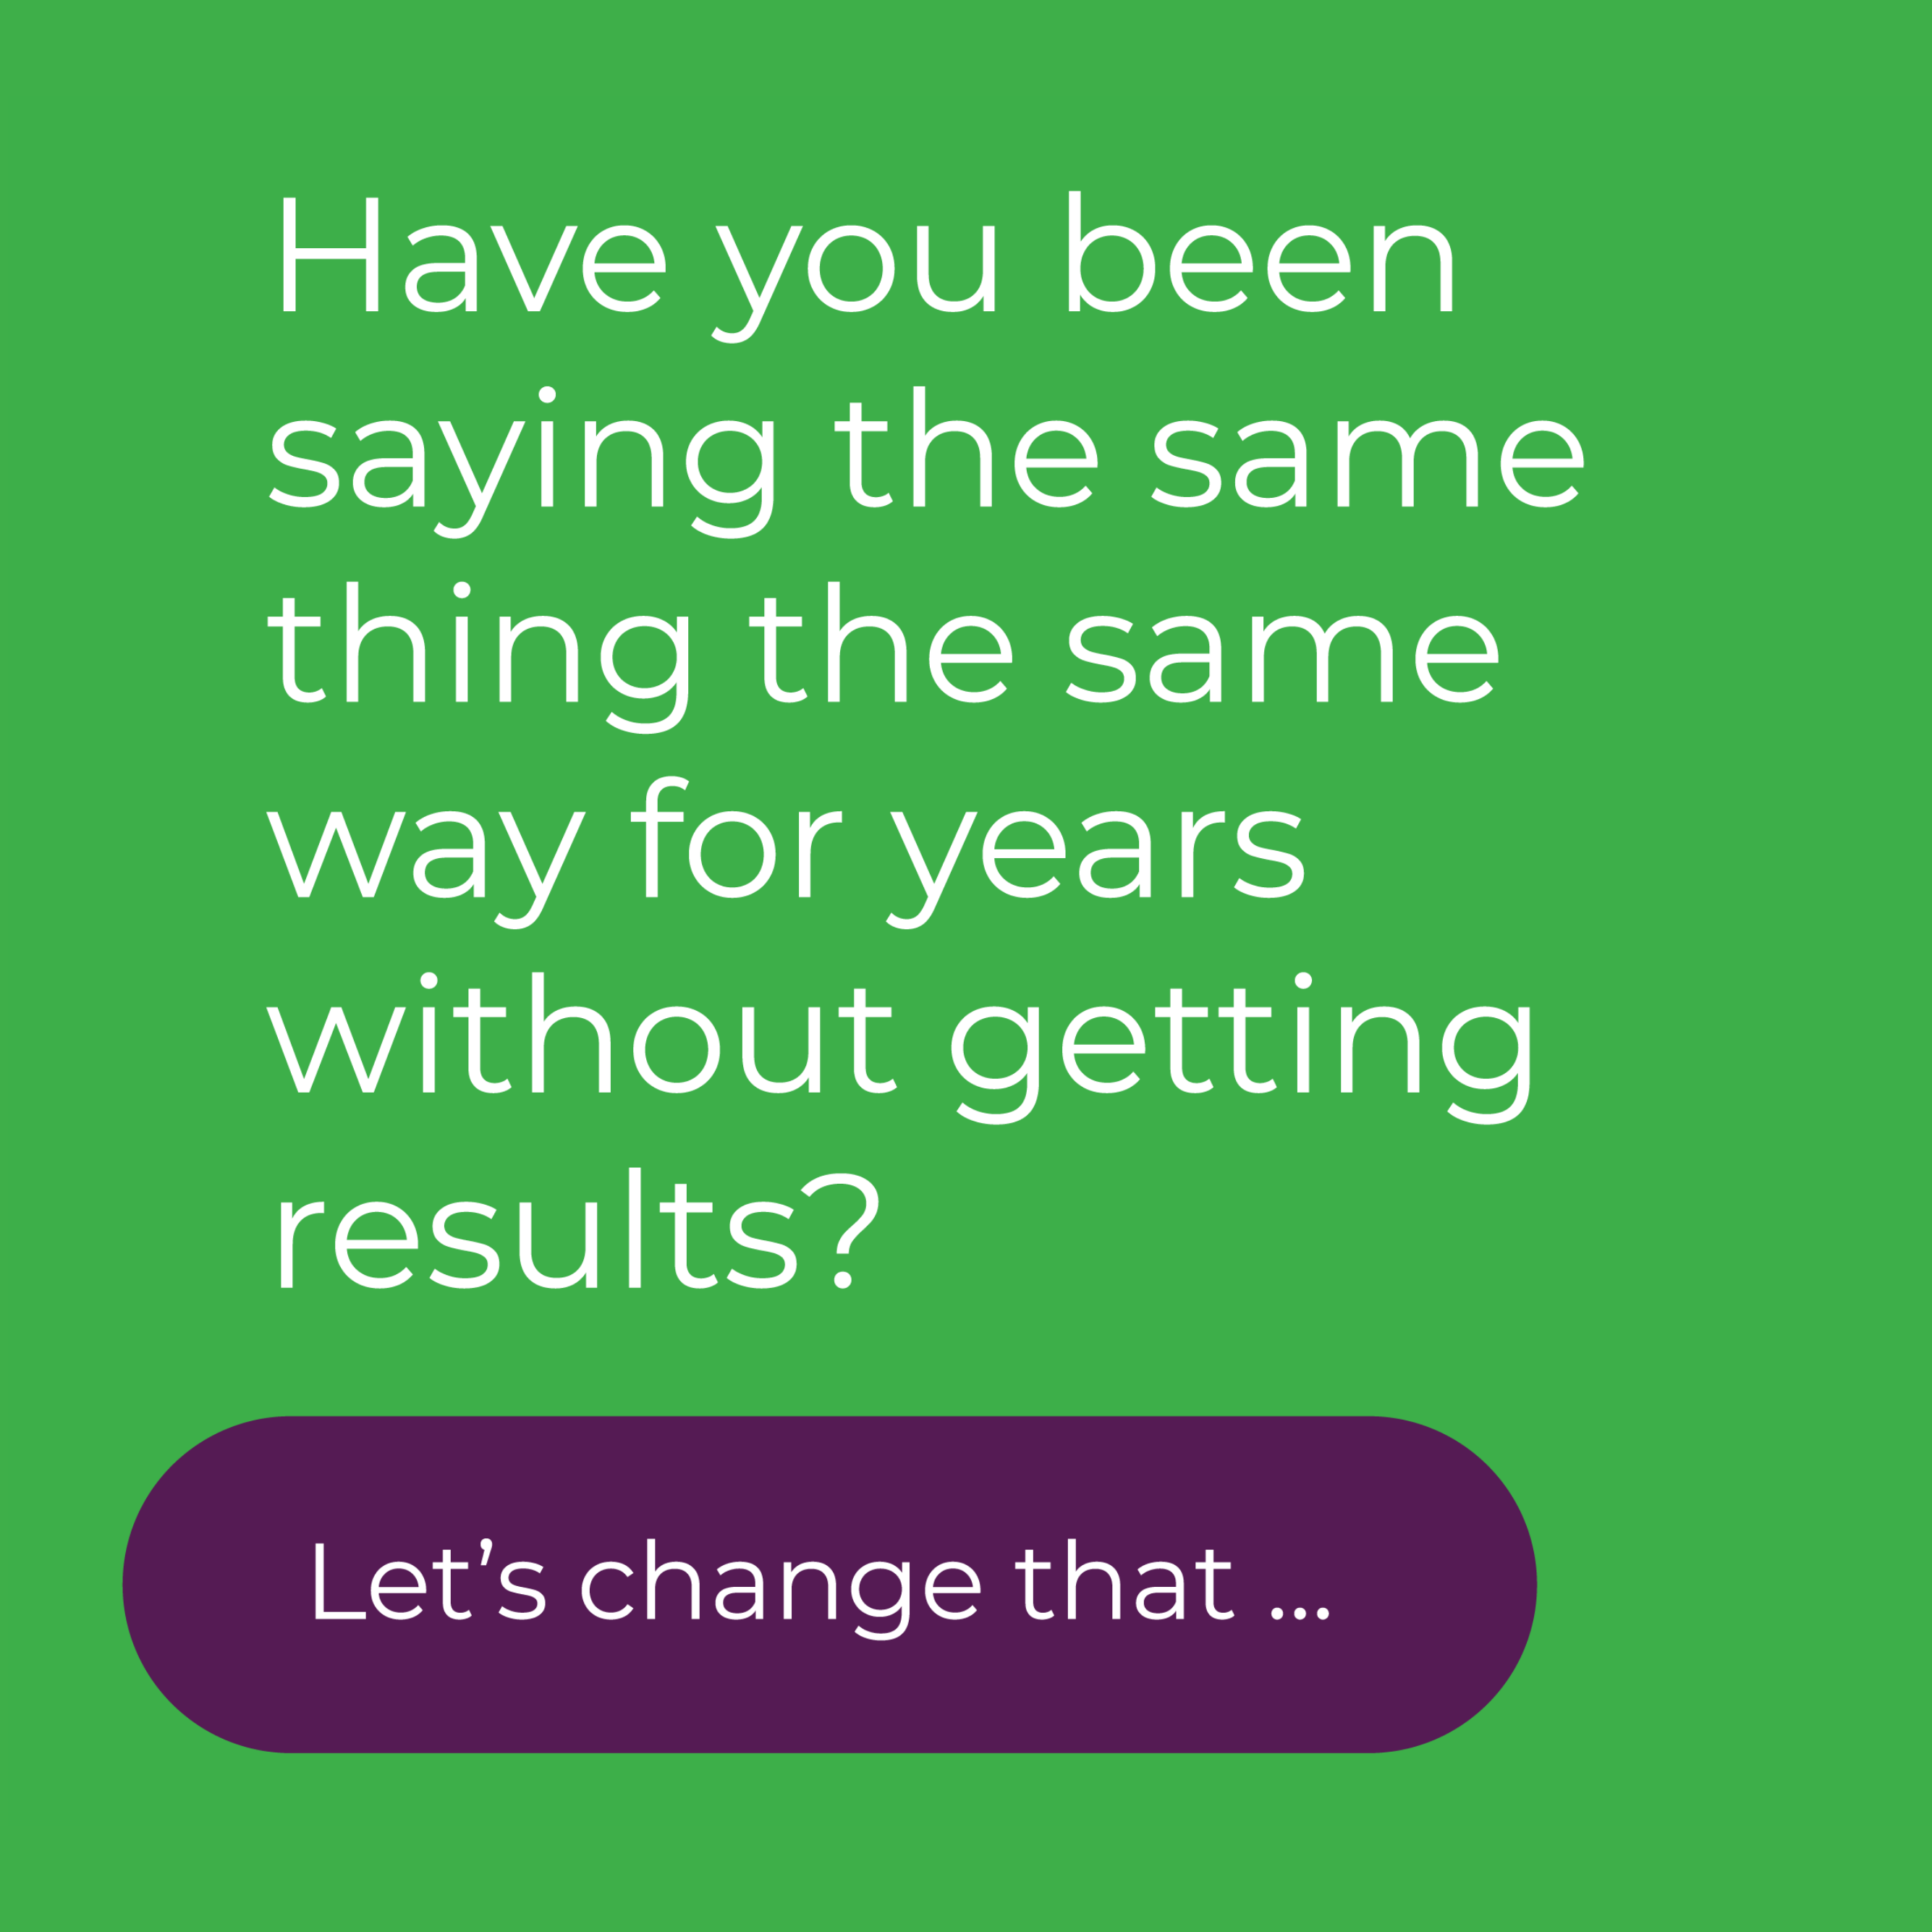 Have you been saying the same thing the same for years with out getting results?